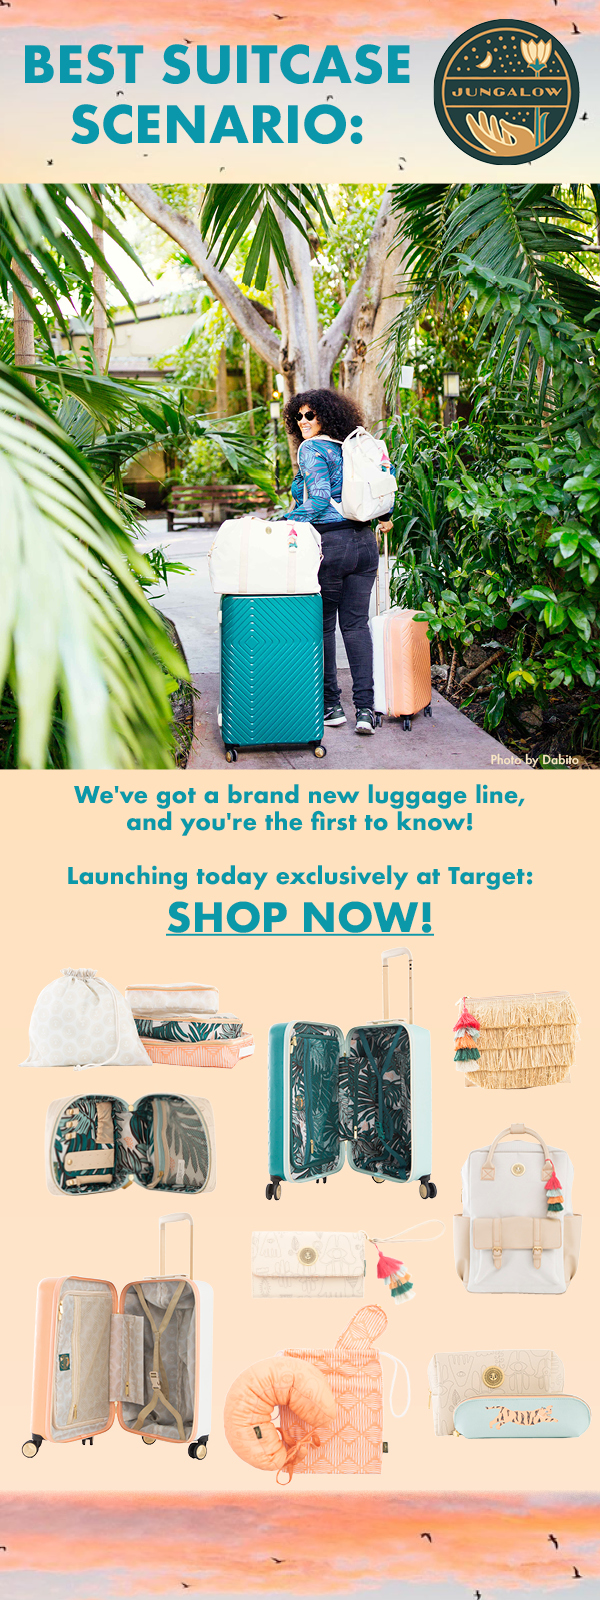 02.10.19 - NEW LUGGAGE LINE_final2